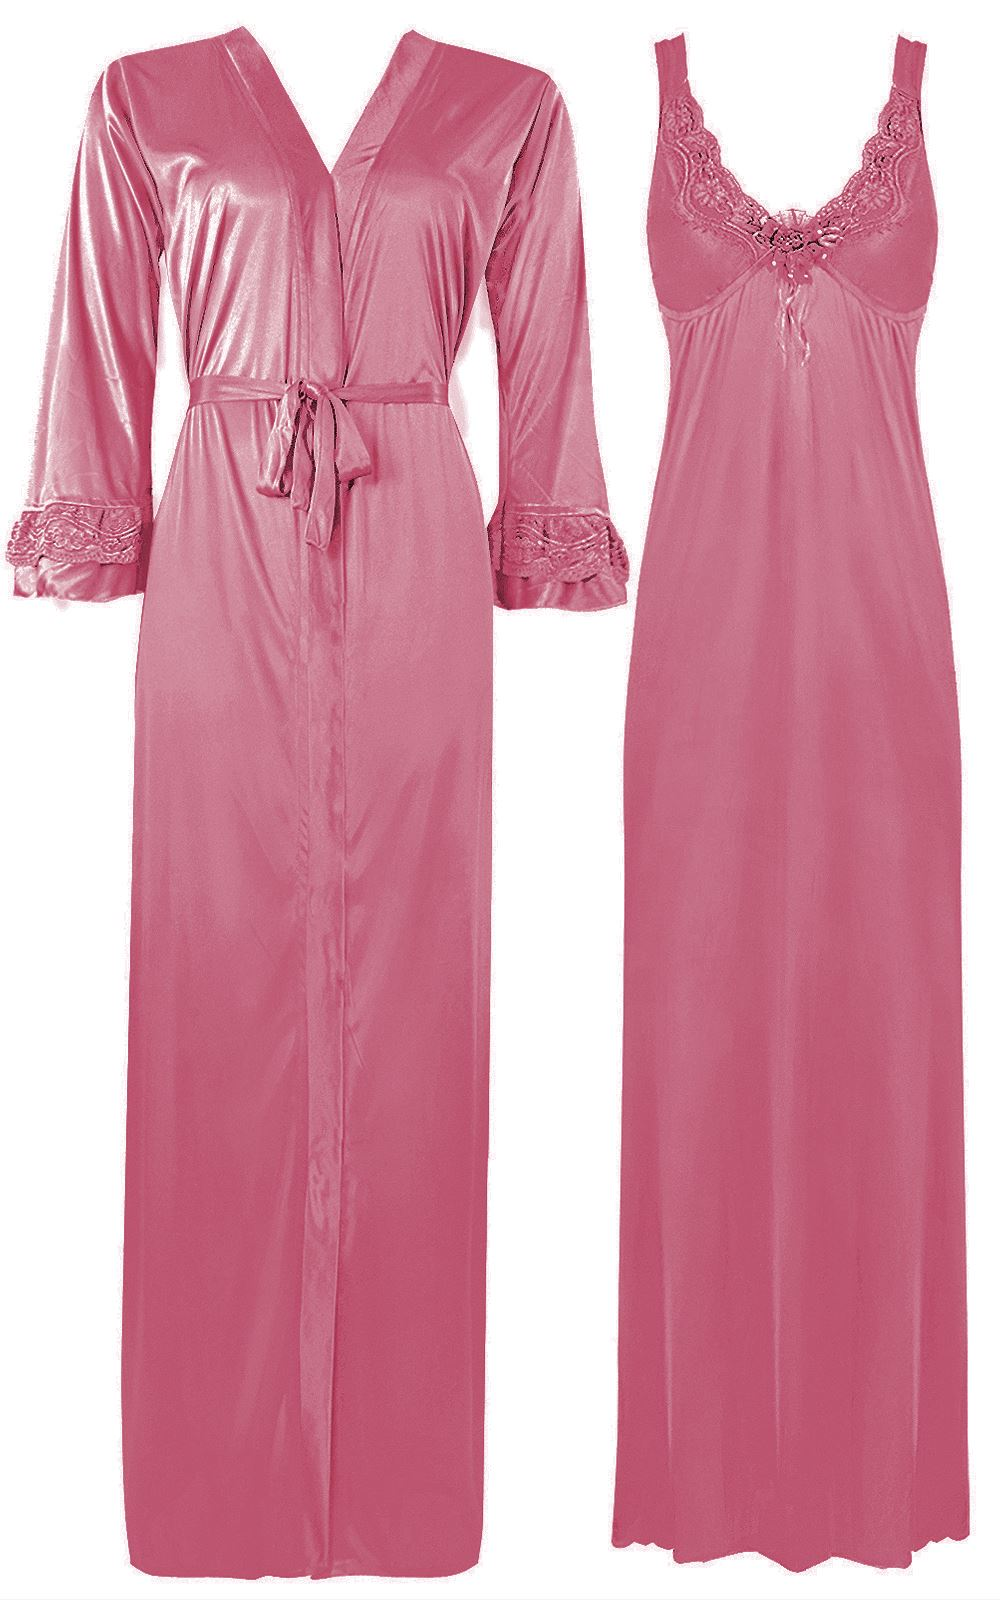 Color: Baby Pink, Black, Blue, Cerise, Coral, Dark Purple, Dark Wine, Deep Red, Fuchsia, Gold, Green, Hot Pink, Light Purple, Navy, Neon Green, Orange, Purple, Red, Rose, Rose Pink, Royal Blue, Ruby, Silver, Teal, Wine 2 Piece Satin Nighty and Robe With Long Sleeve Dressing Gown Size: XL, One Size